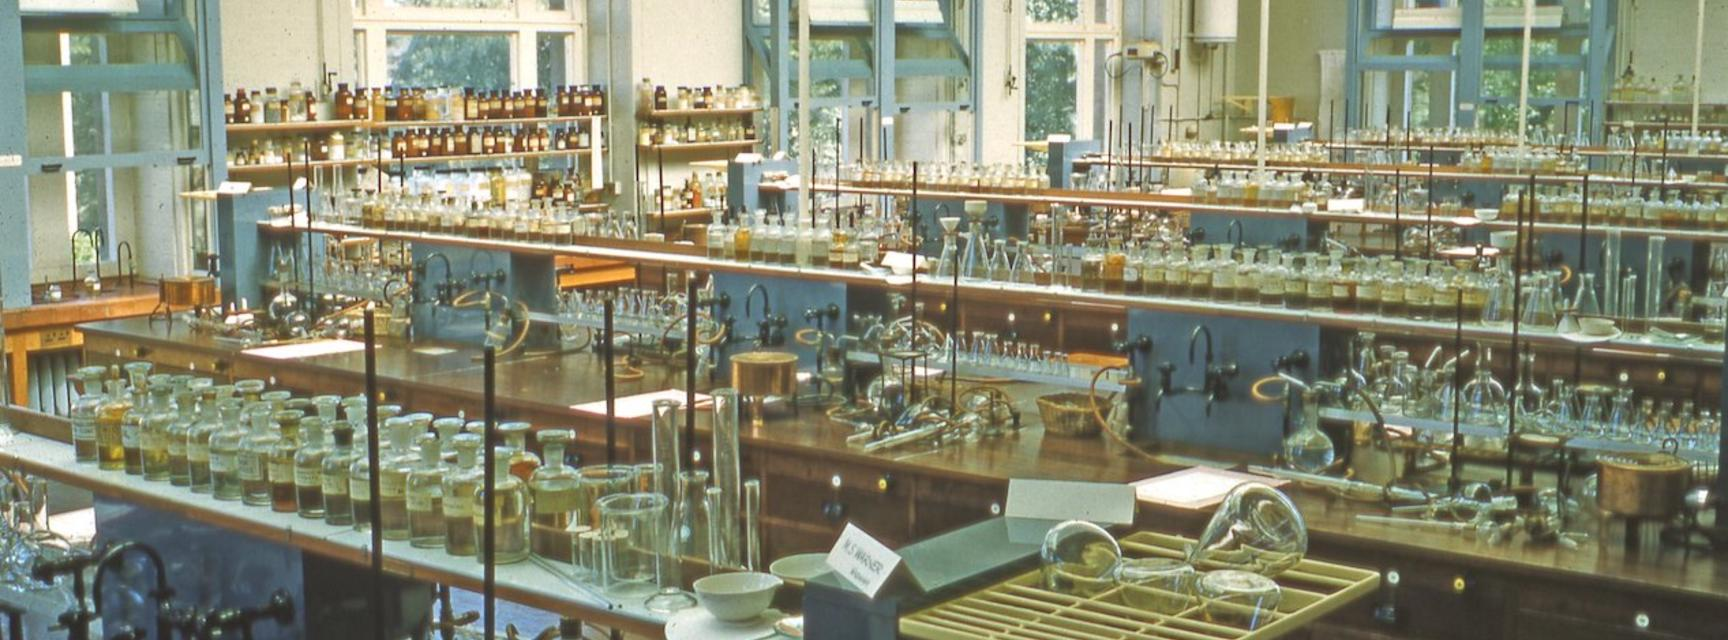 Photo of the inside of the Dyson Perrins Organic Teaching Laboratory